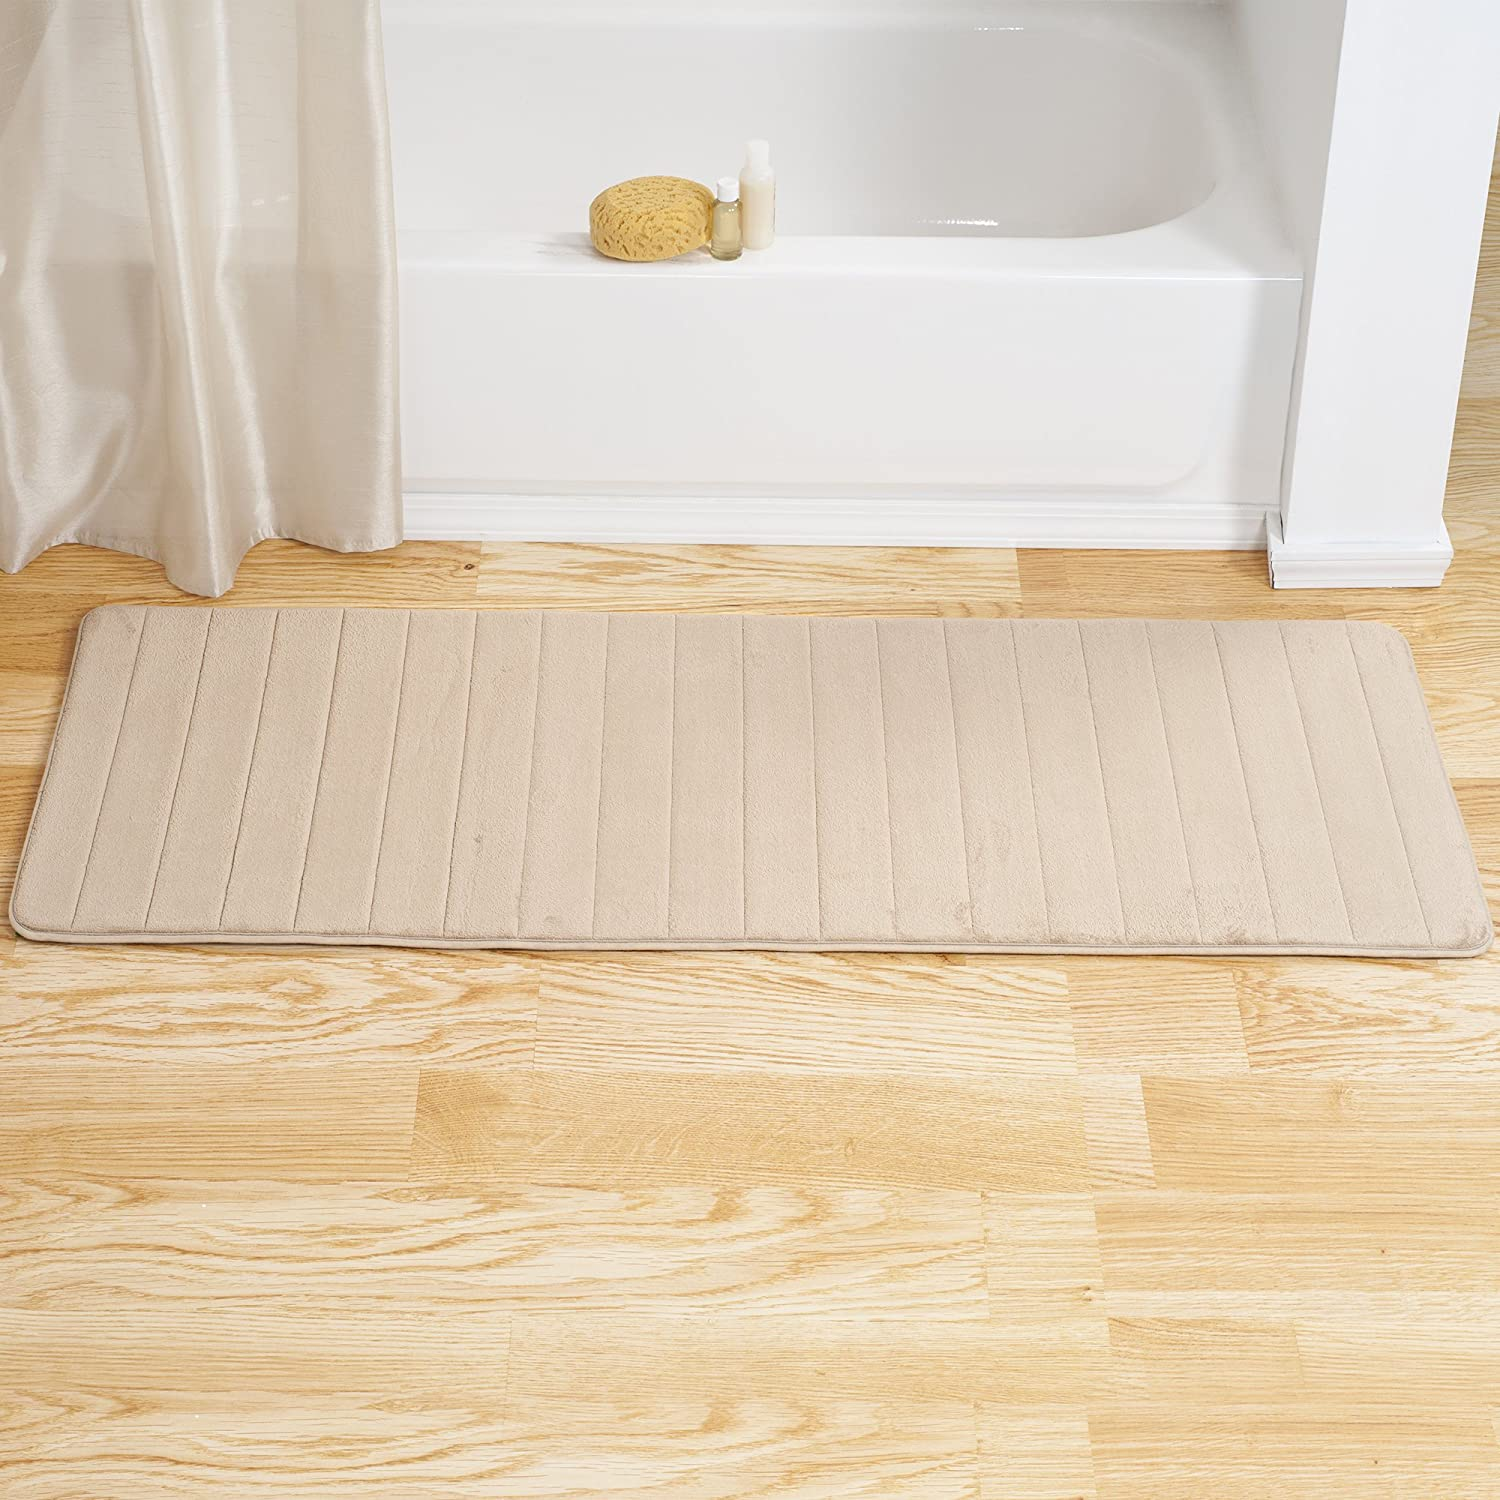 "Lavish Home Memory Foam Striped Extra Long Bath Mat, 24 by 60"", Ivory"